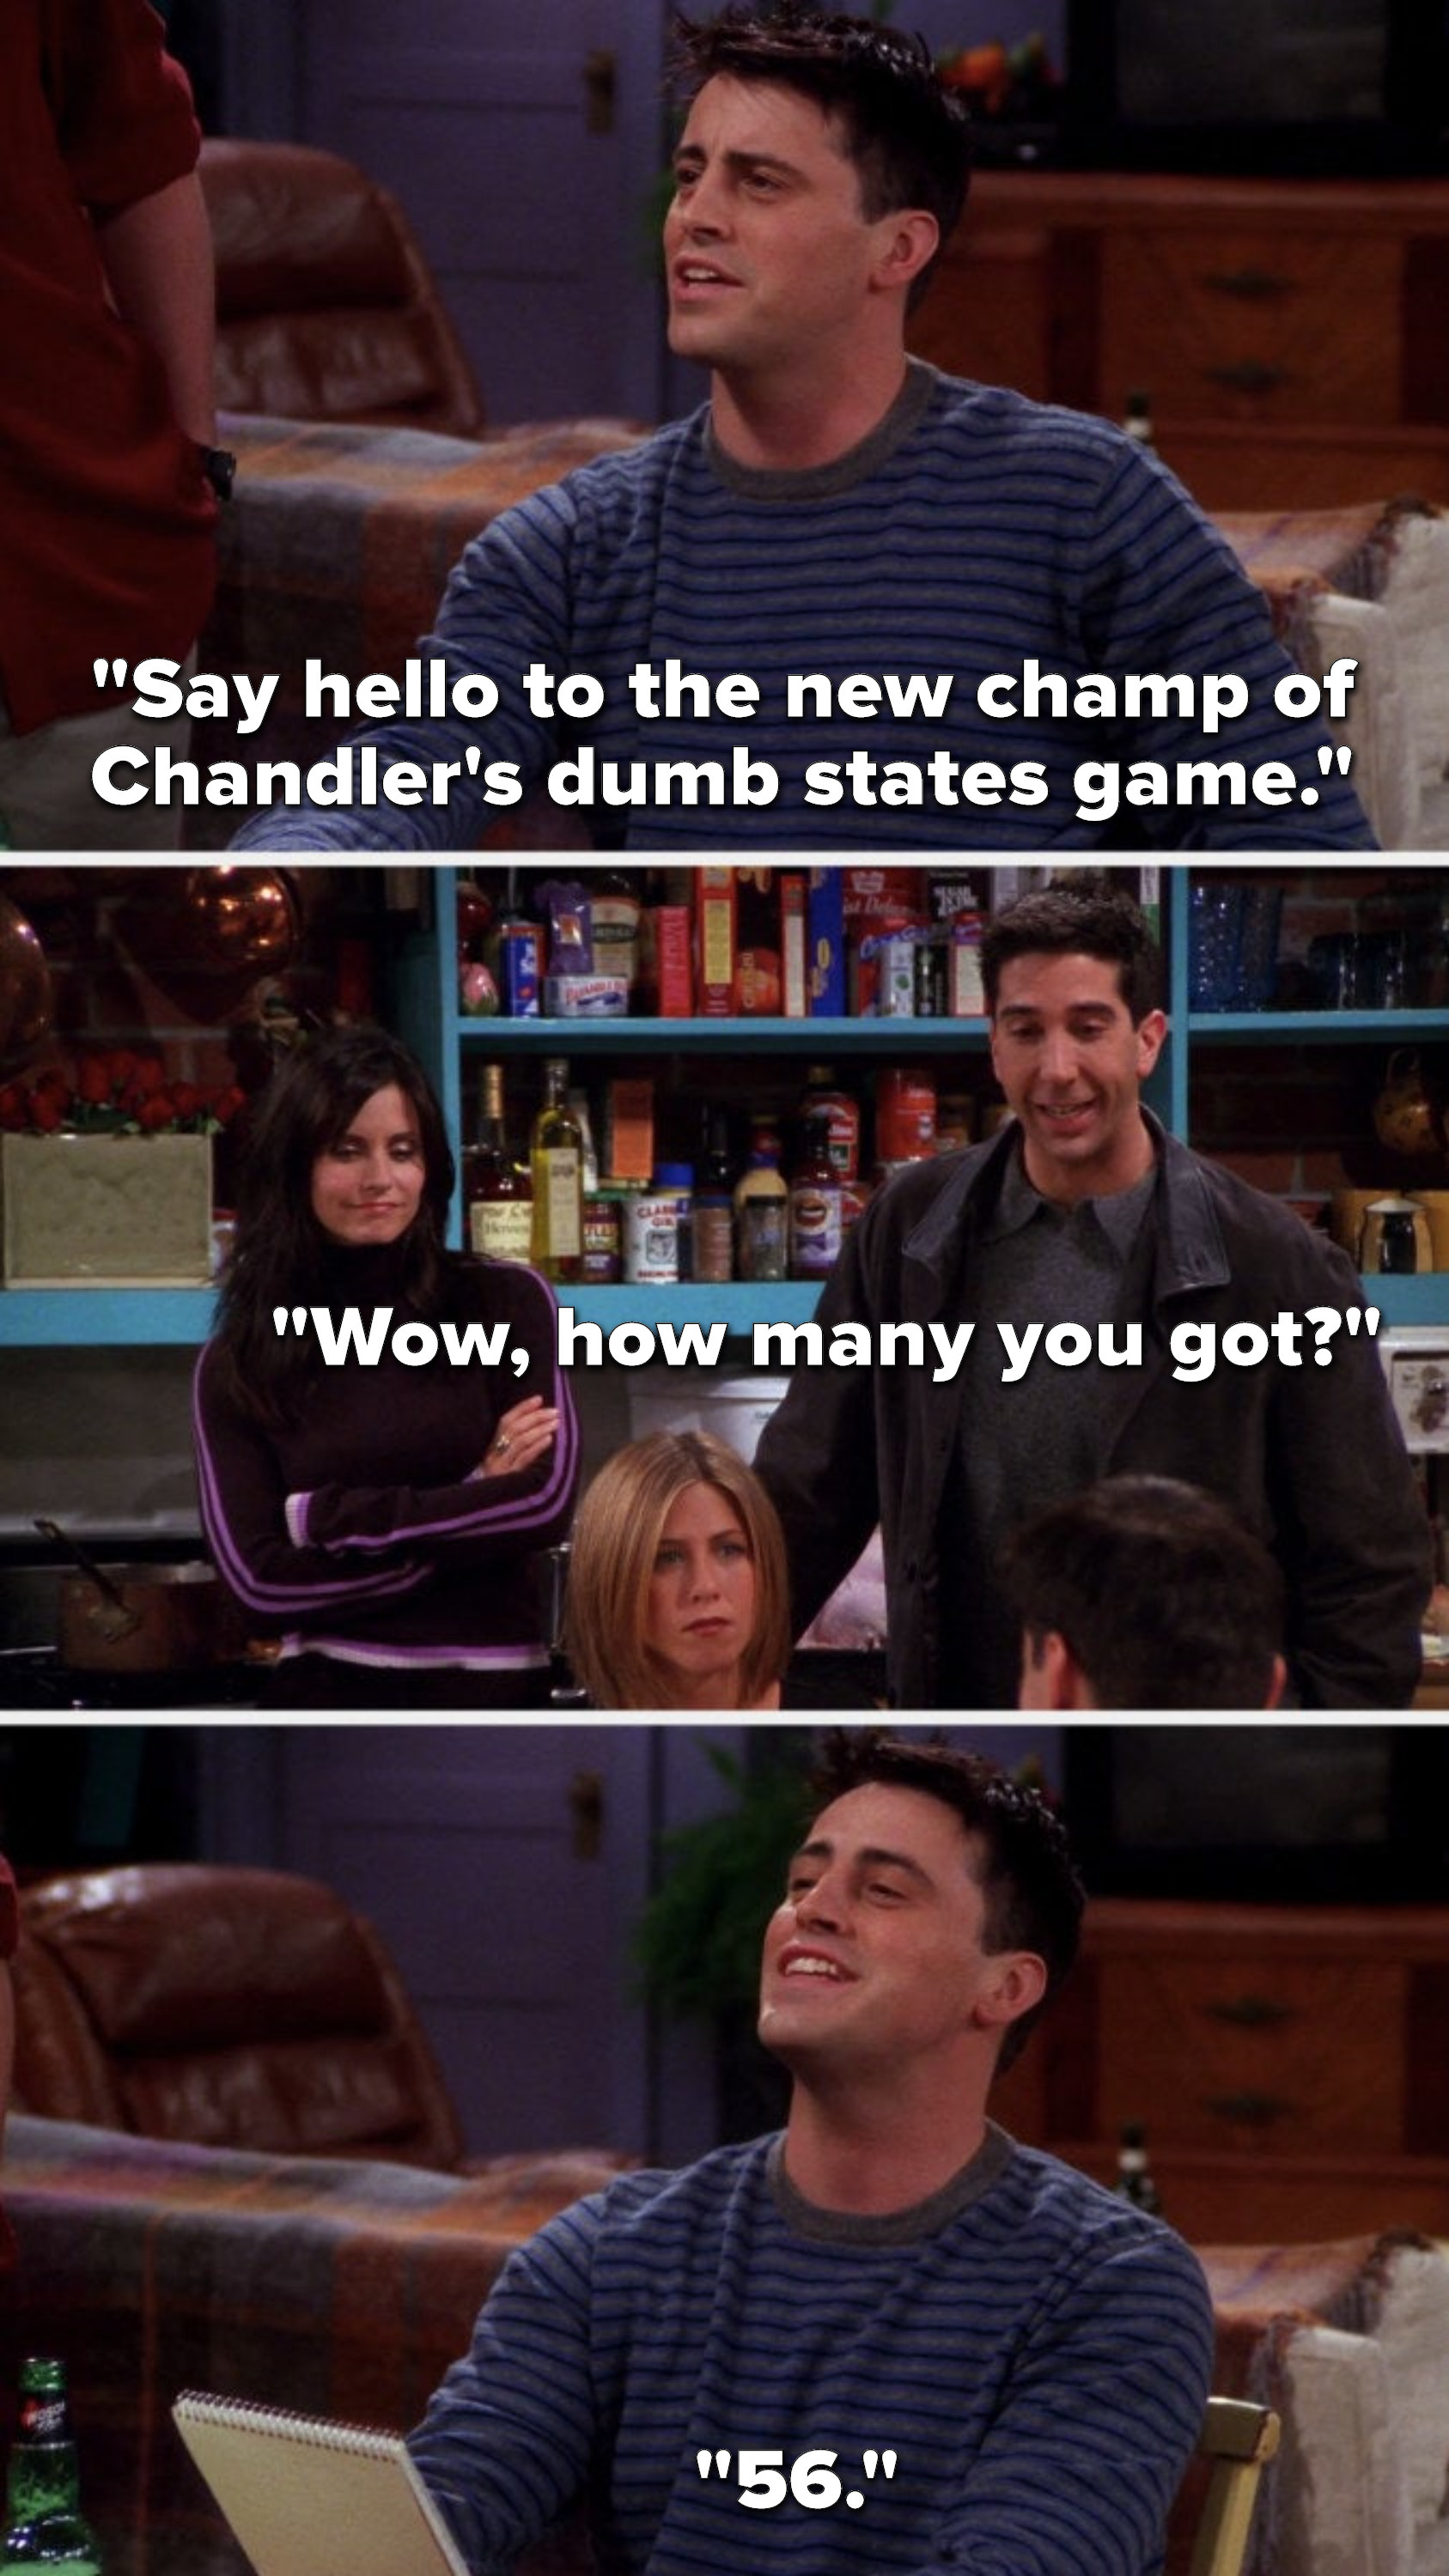 """Joey says, """"Say hello to the new champ of Chandler's dumb states game,"""" Ross says, """"Wow, how many you got,"""" and Joey says, """"56"""""""